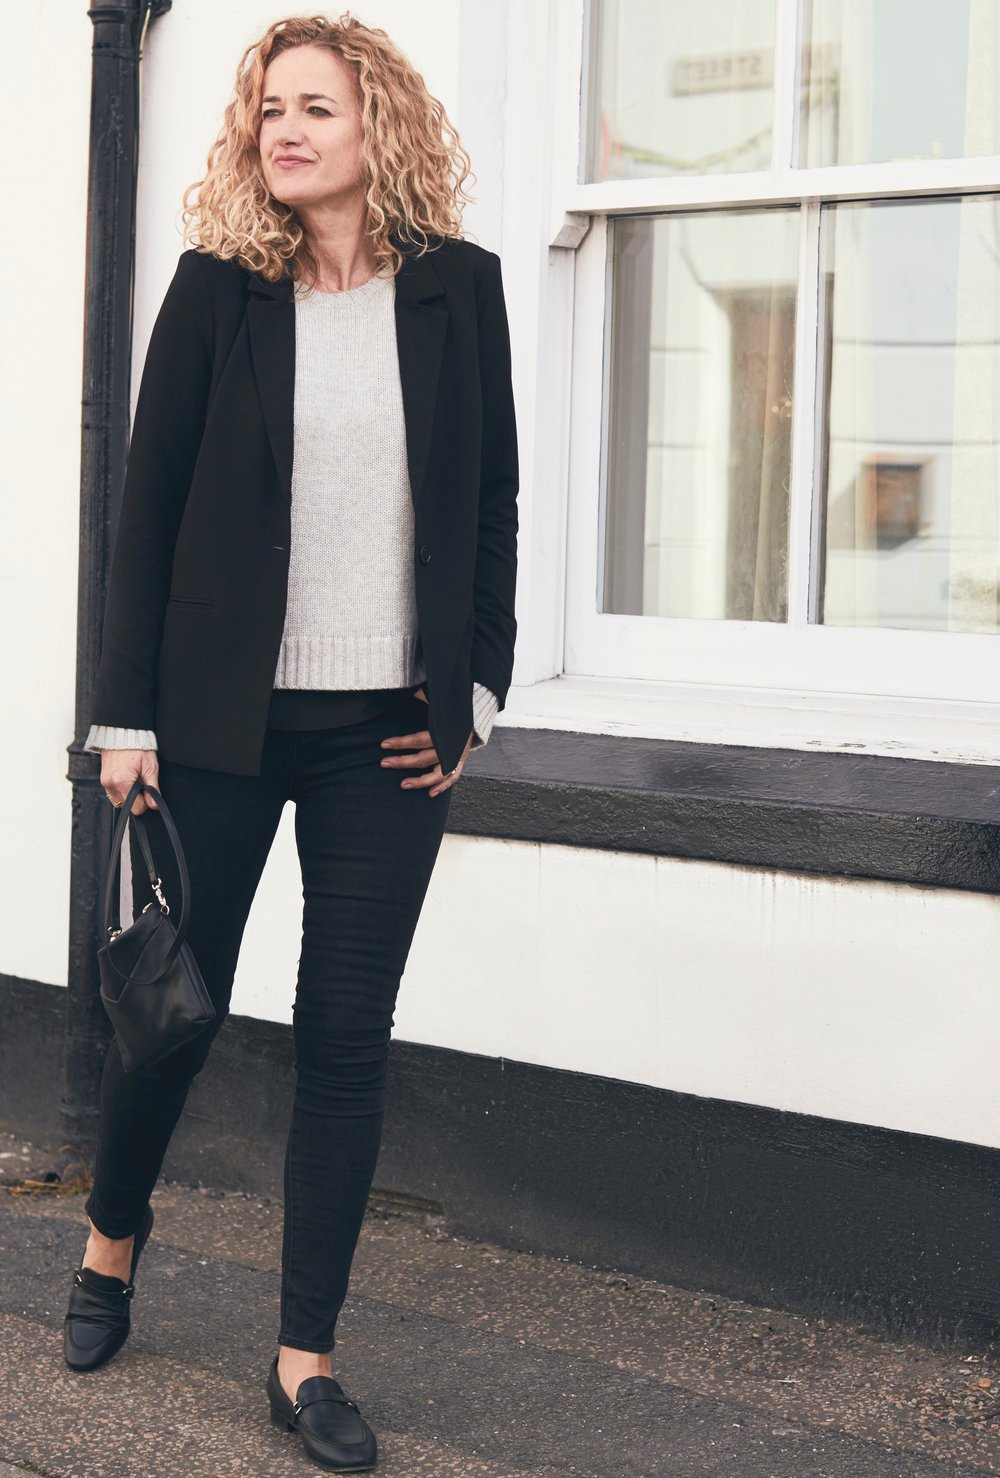 EVERYDAY STYLE SAVIOURS - The Grown Up Edit